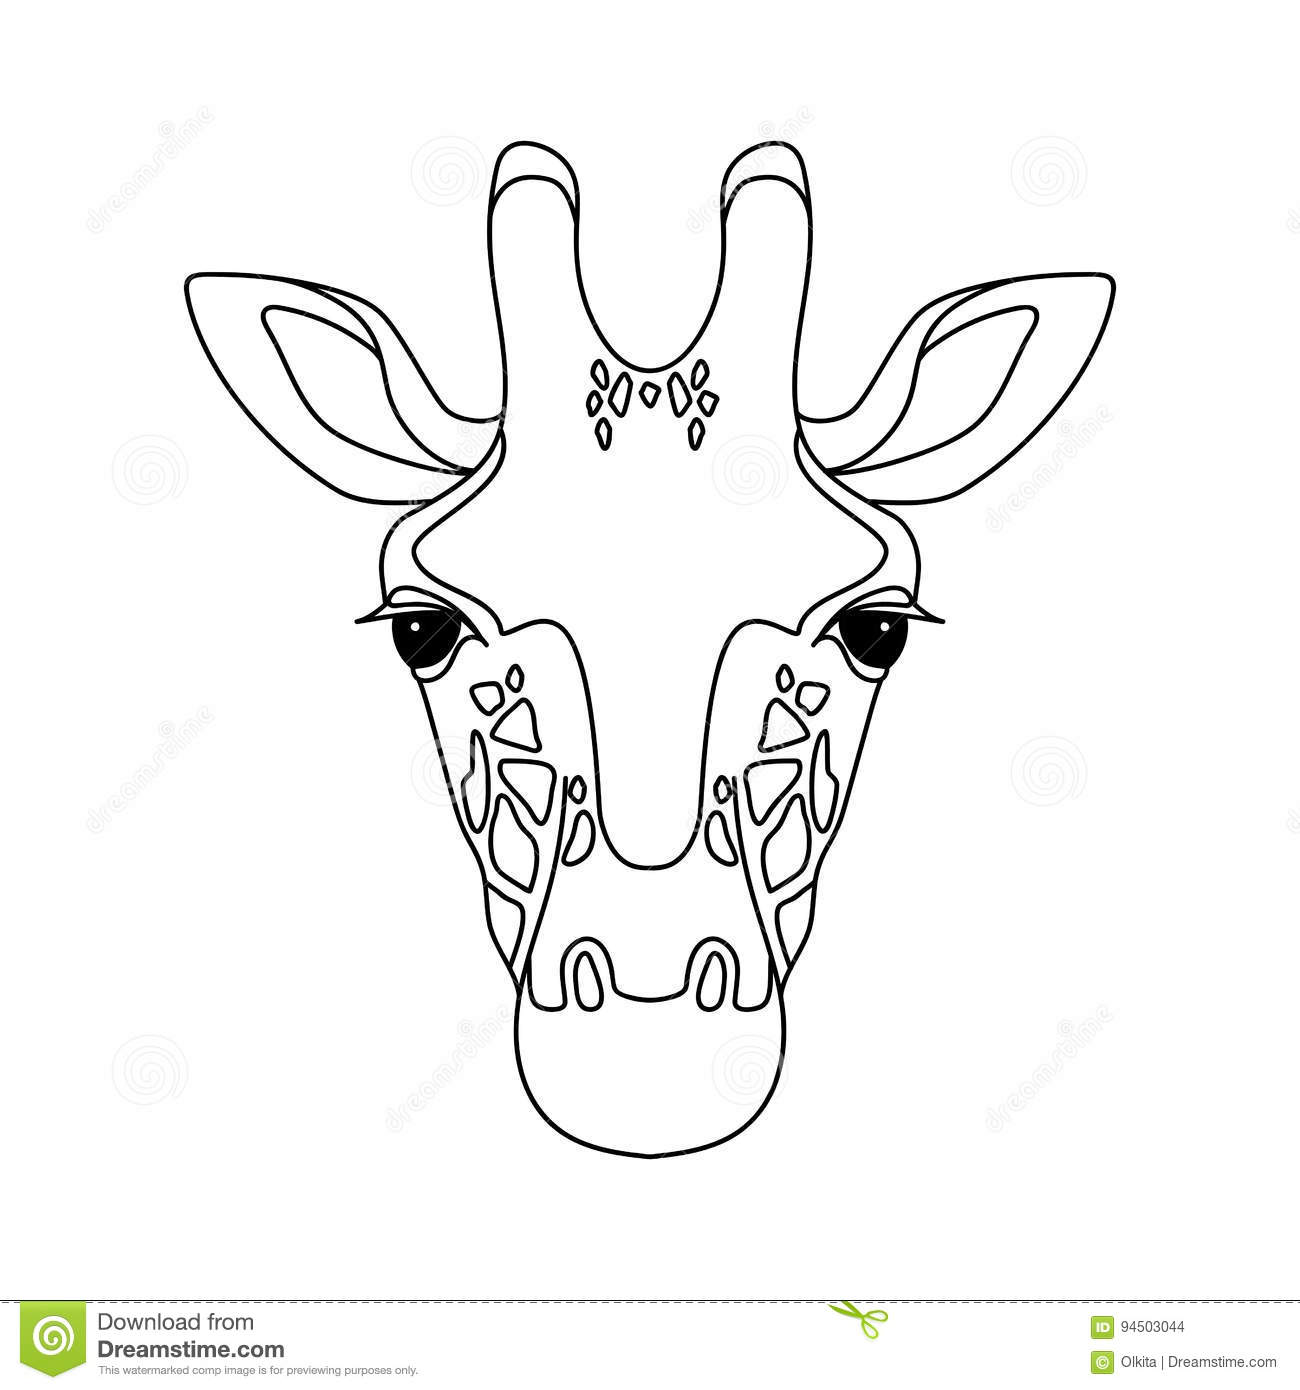 outline for speech on giraffes Persuasive speech health a dynamic state or condition of the human organism that is multidimensional in nature, a resource for living, and results from a person's interactions with and adaptations to his or her environment -mckenzie &pinger.